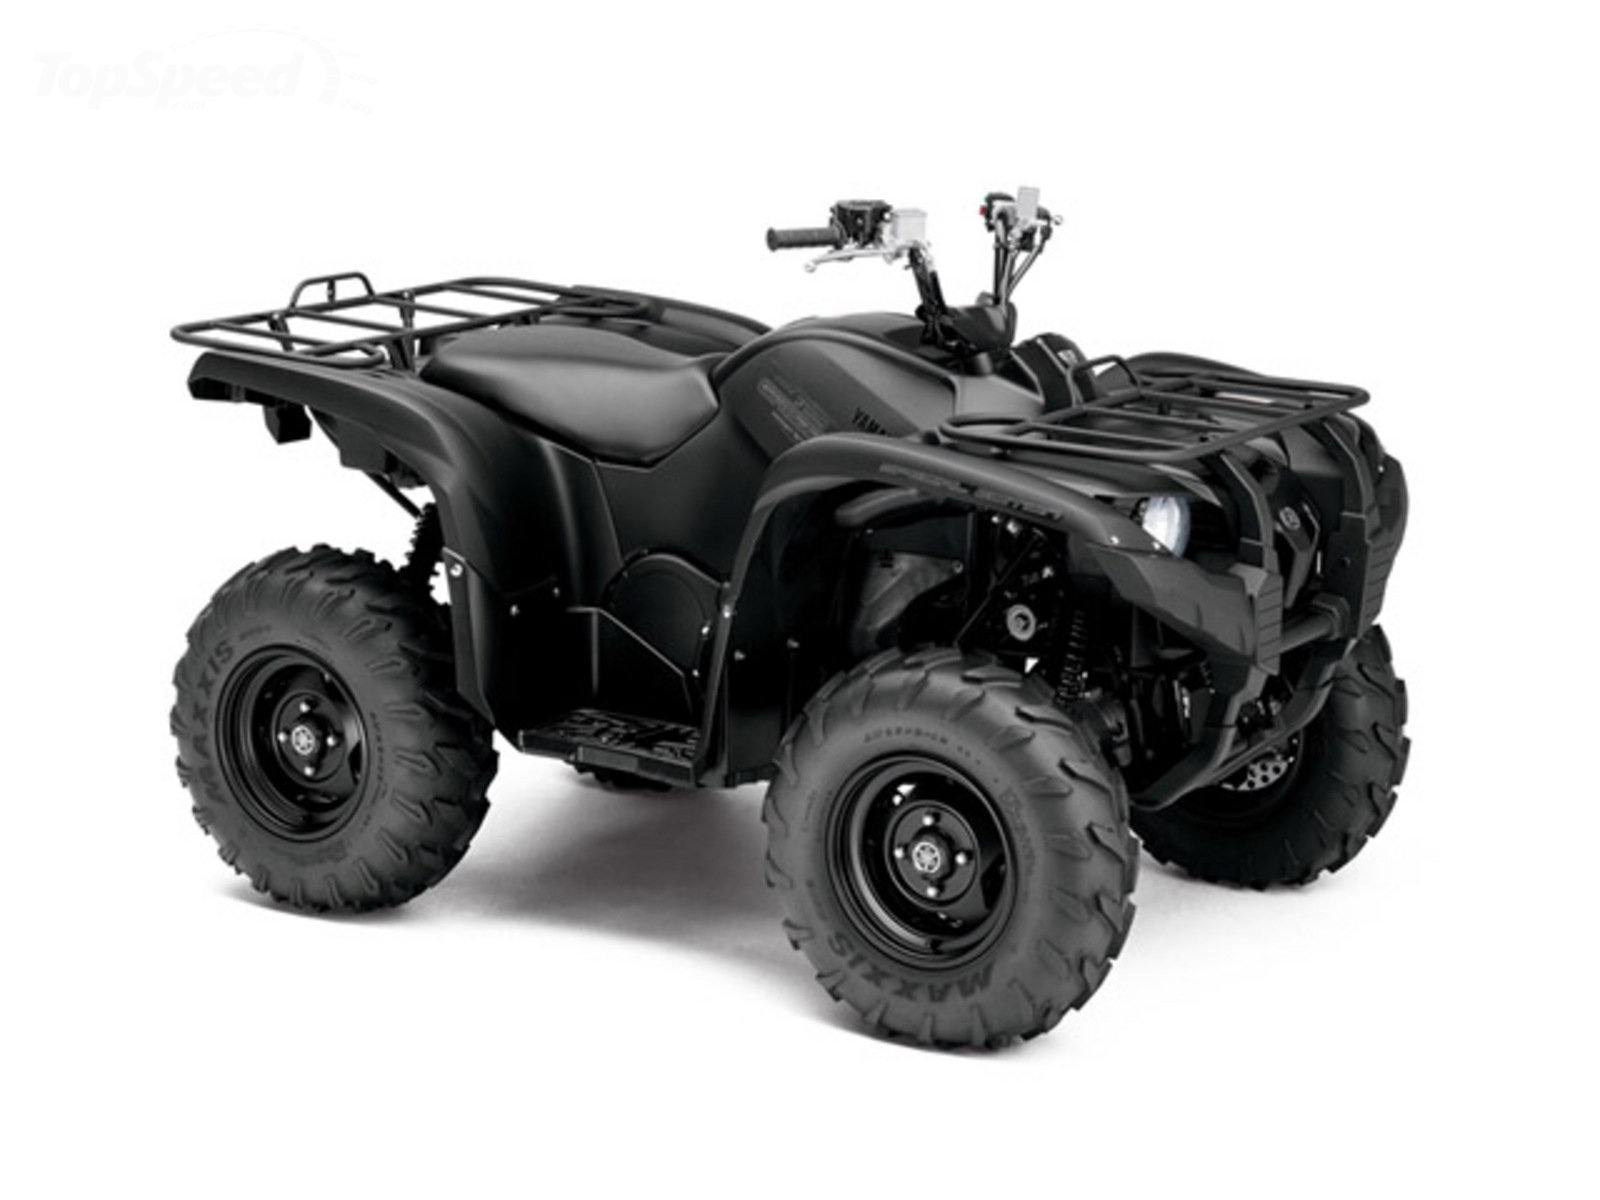 2014 yamaha grizzly 700 fi auto 4x4 eps special edition review top speed. Black Bedroom Furniture Sets. Home Design Ideas